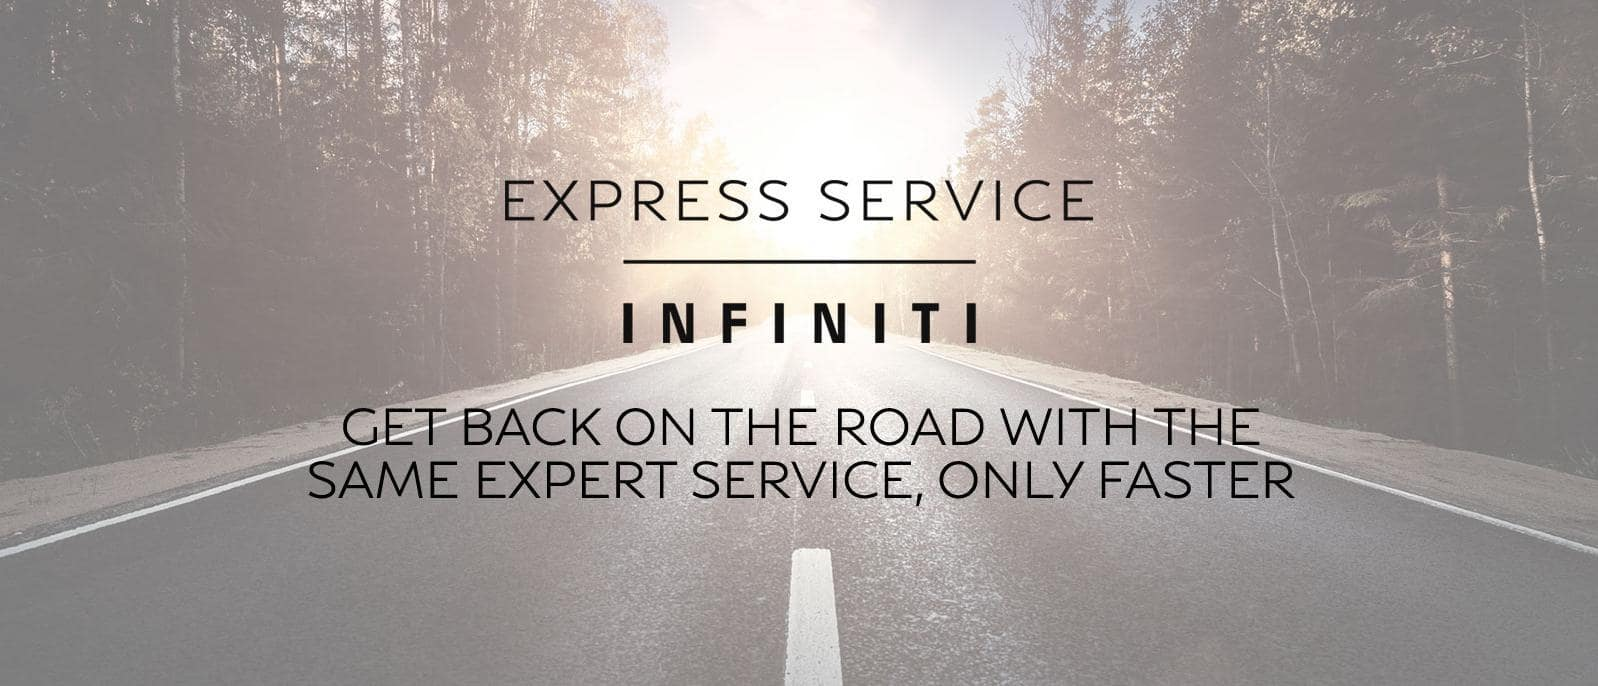 INFINITI Express Service Clifton NJ